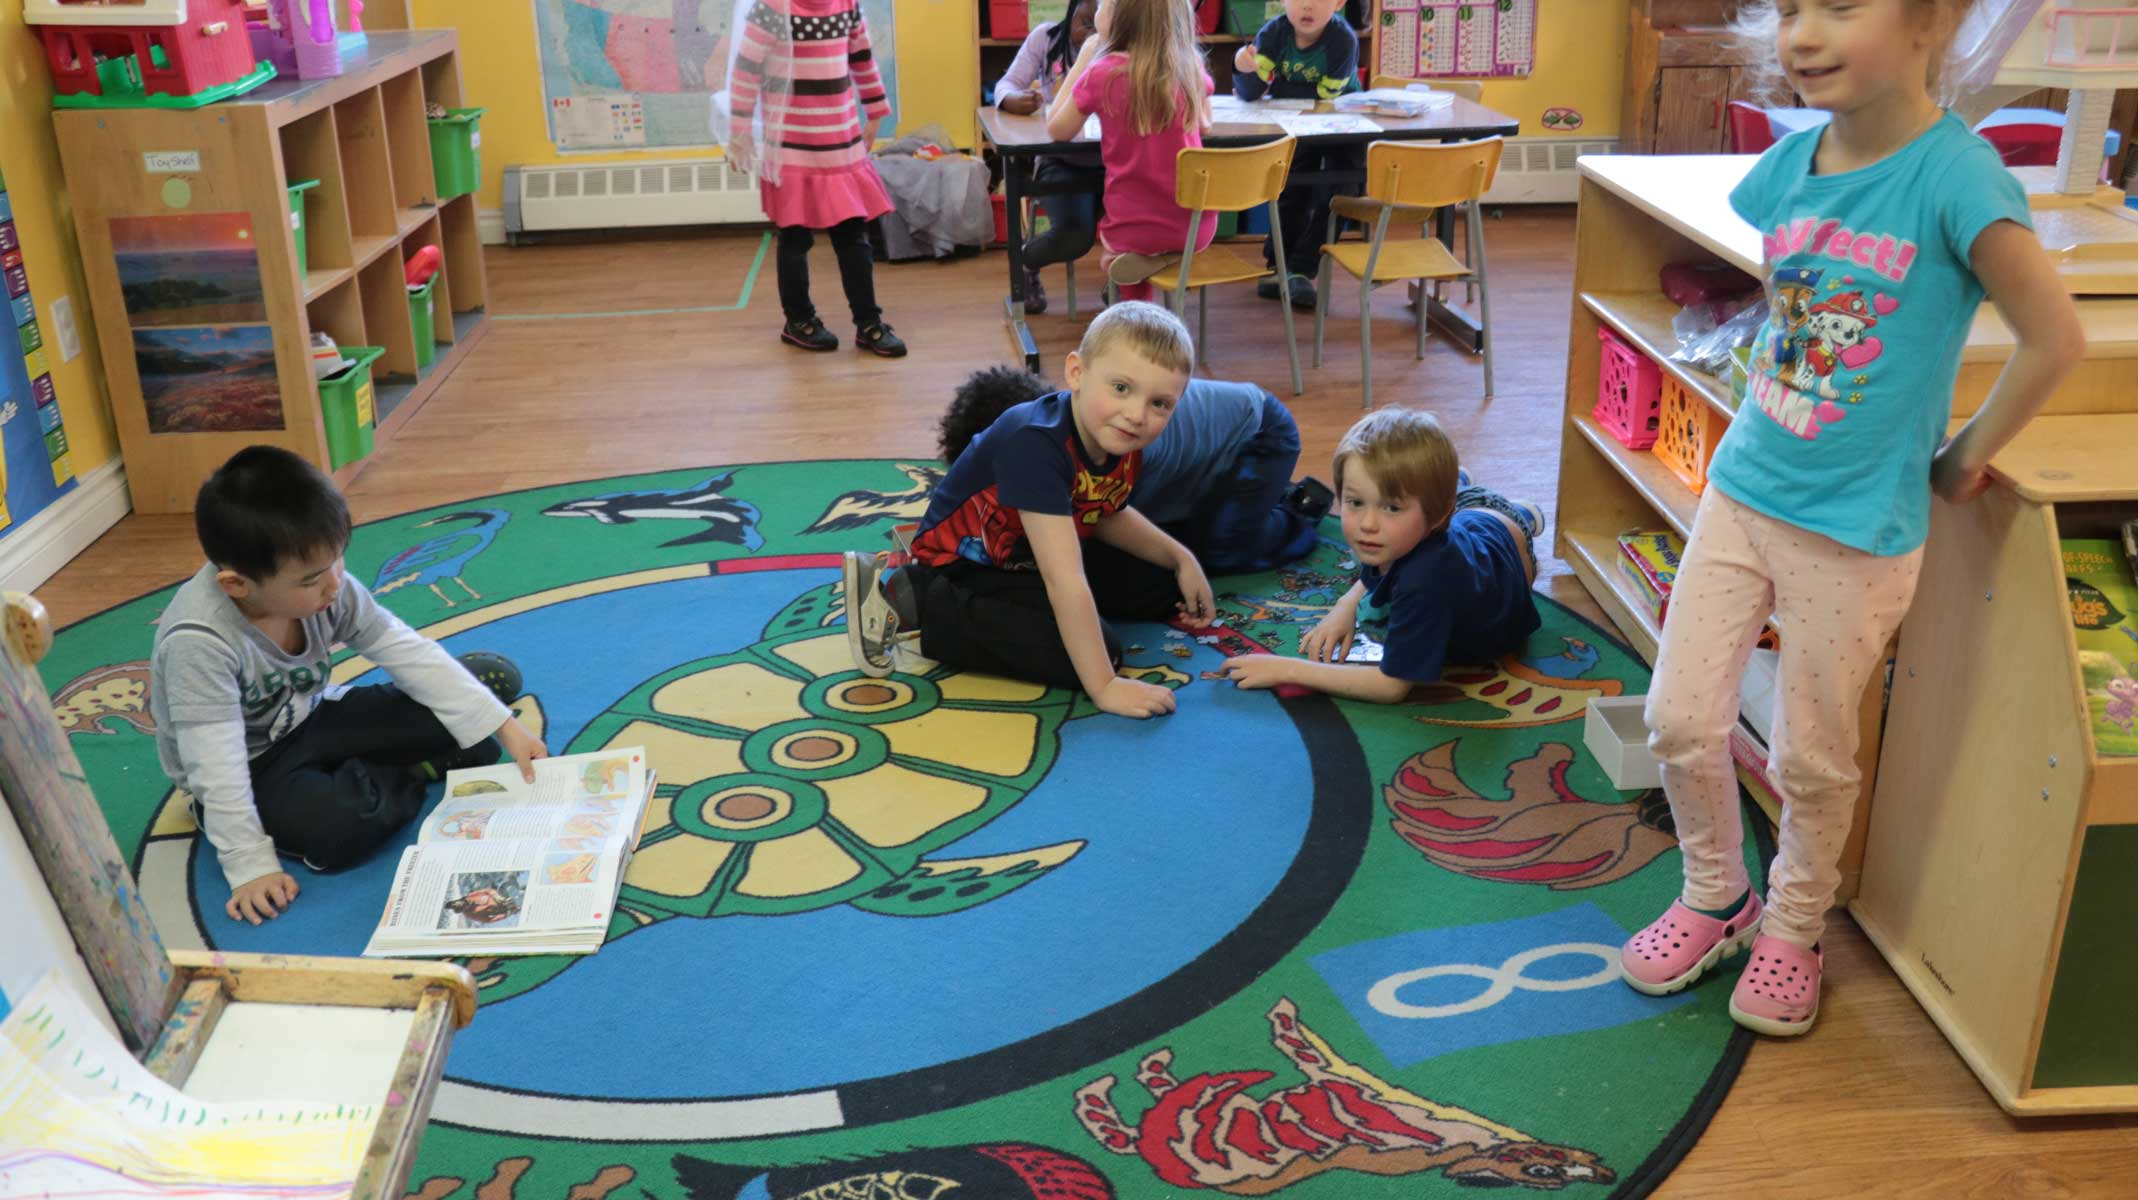 Children playing at the Little Sundance Daycare